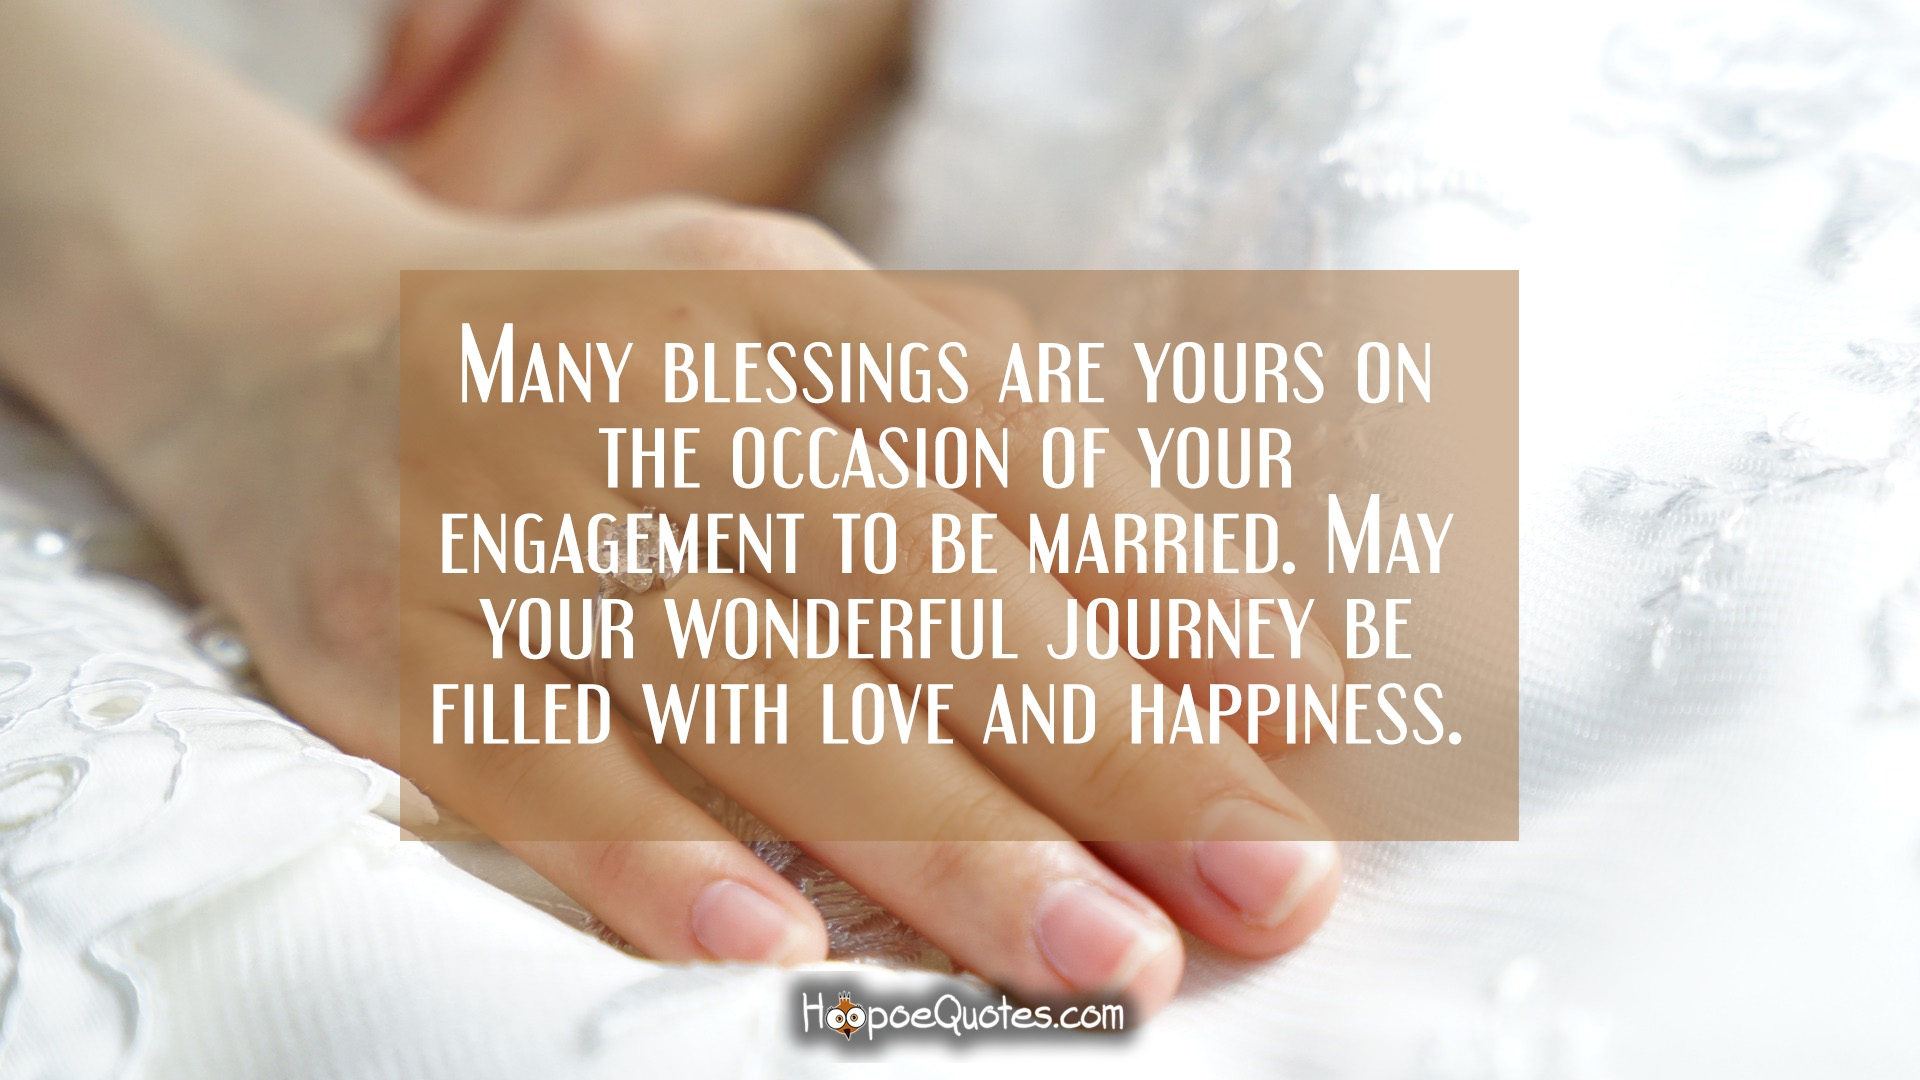 170 hd images engagement wishes happy engagement quotes and many blessings are yours on the occasion of your engagement to be married may your wonderful journey be filled with love and happiness m4hsunfo